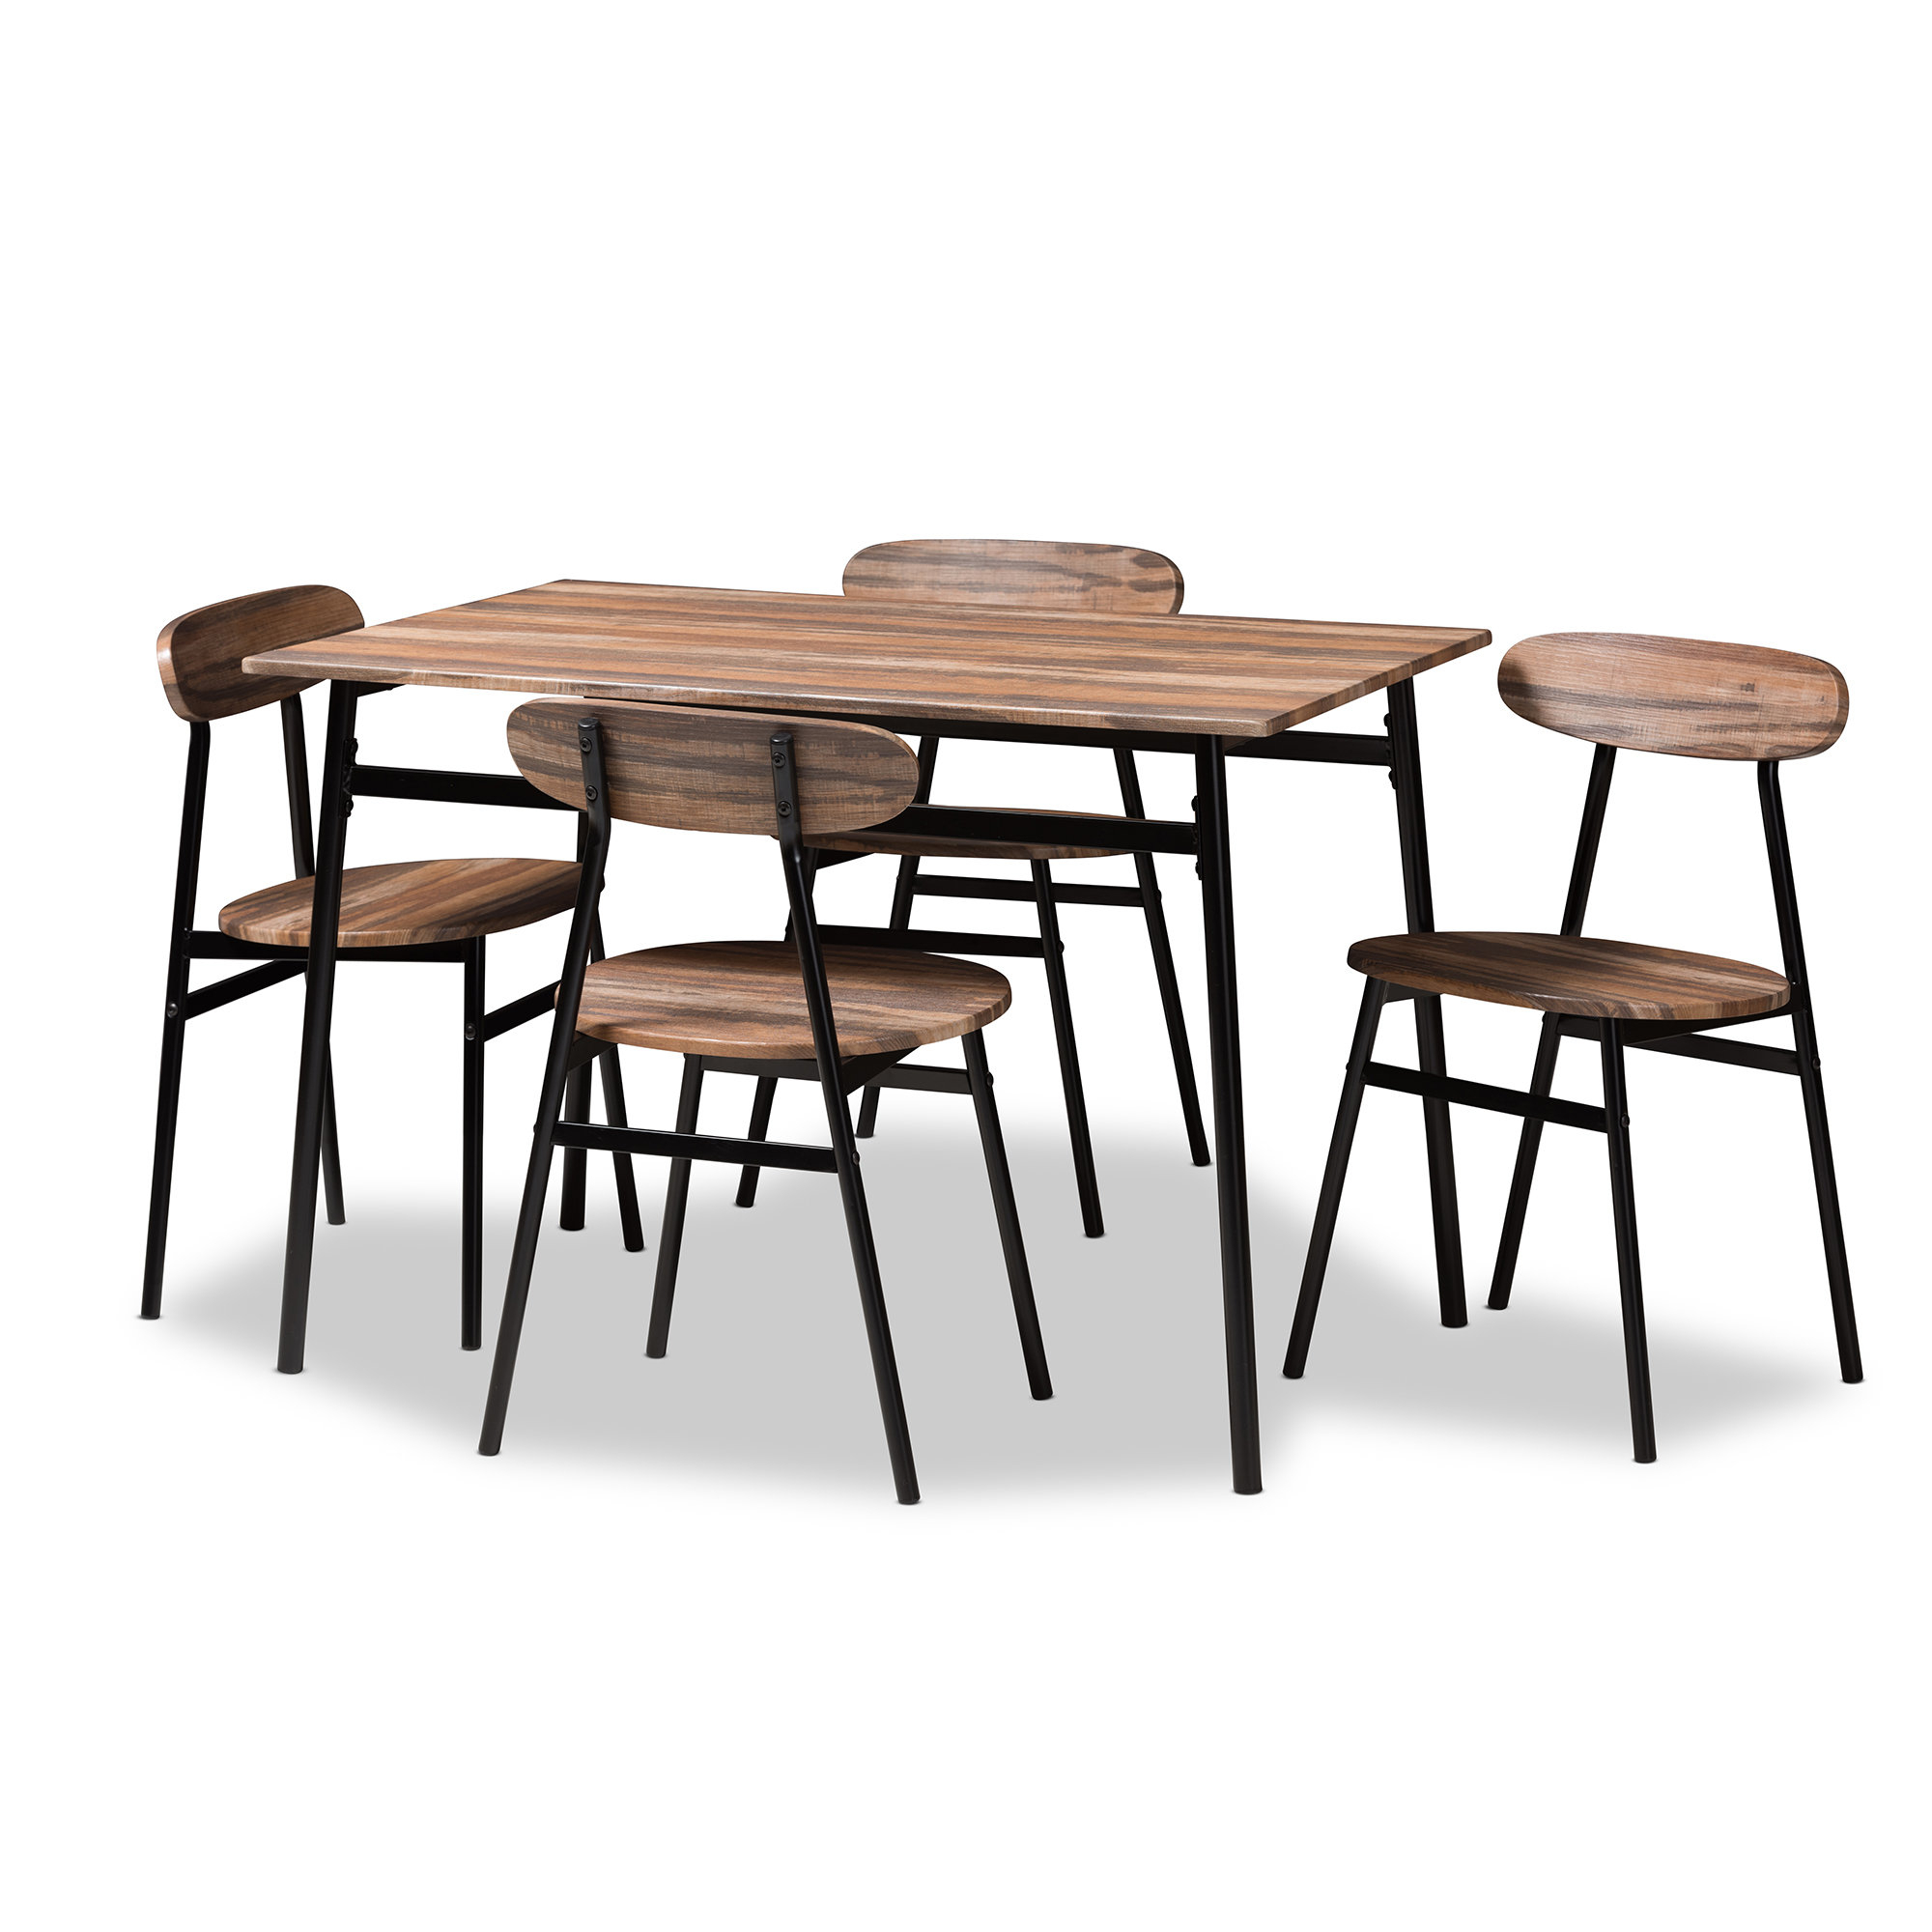 Telauges 5 Piece Dining Set Intended For Most Up To Date Shepparton Vintage 3 Piece Dining Sets (View 11 of 20)